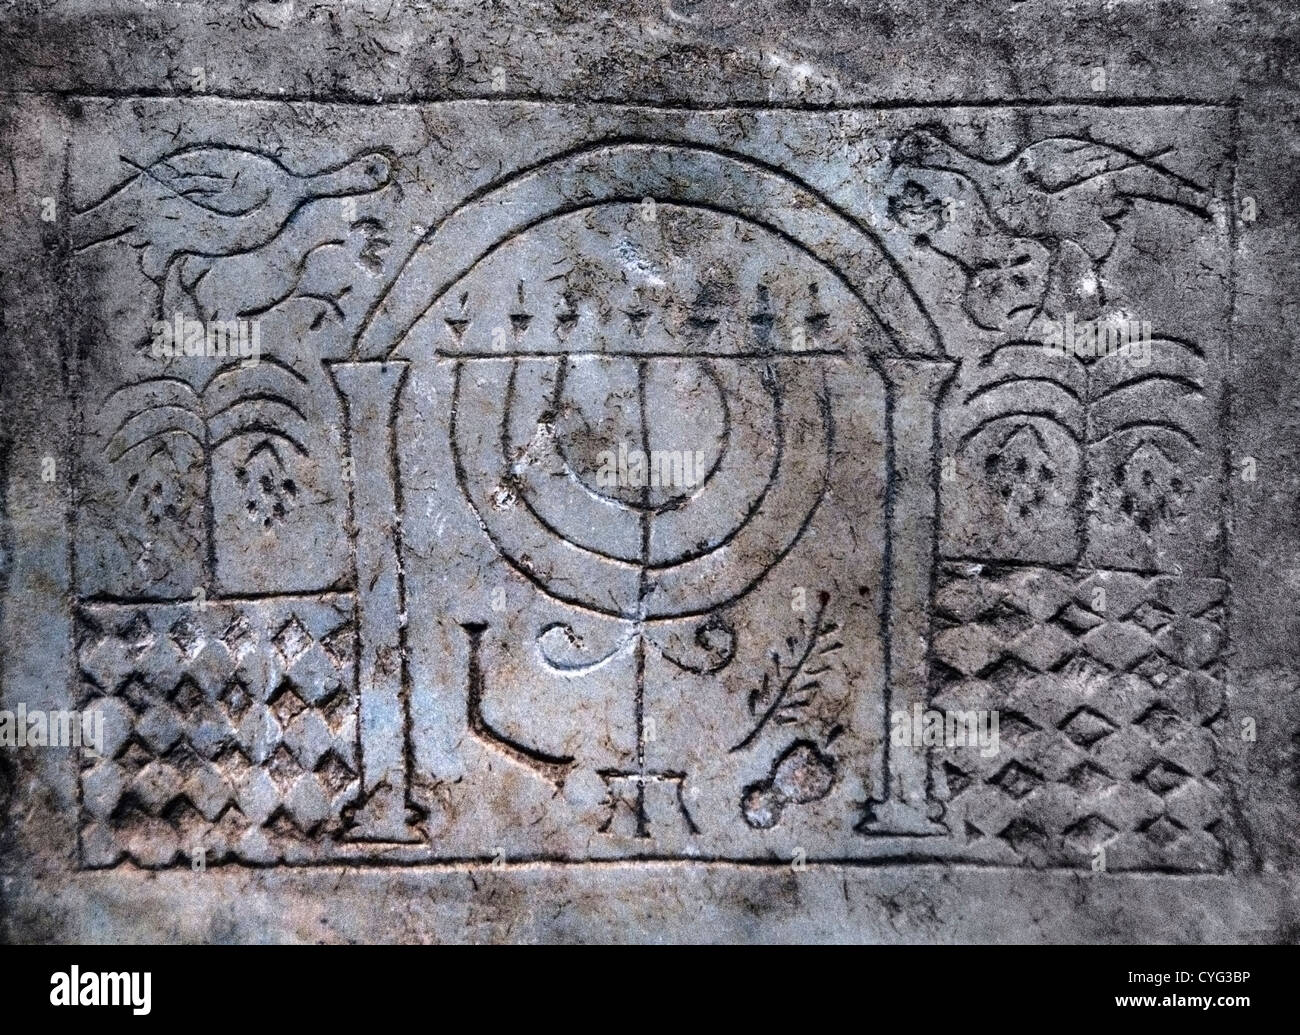 Marble plaque  Menorah Byzantine Asia Minor 300 - 700 The temple instruments shofar lulav etrog  Judaea Judaism - Stock Image